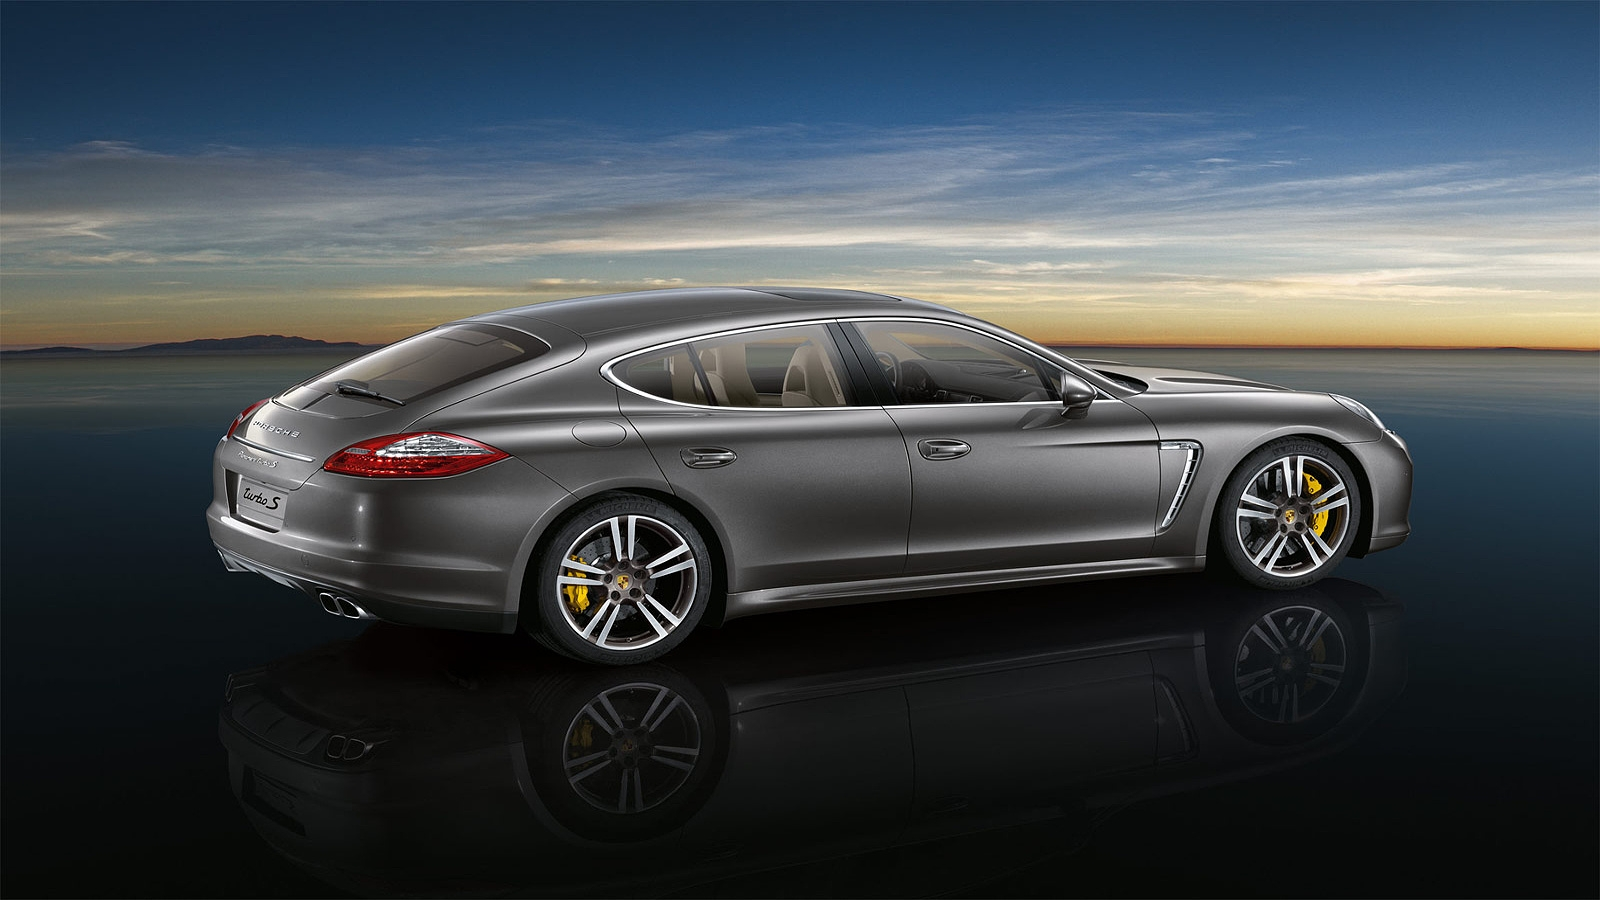 Porsche Panamera Turbo 4wd In Munich Hire Car Rental Pd